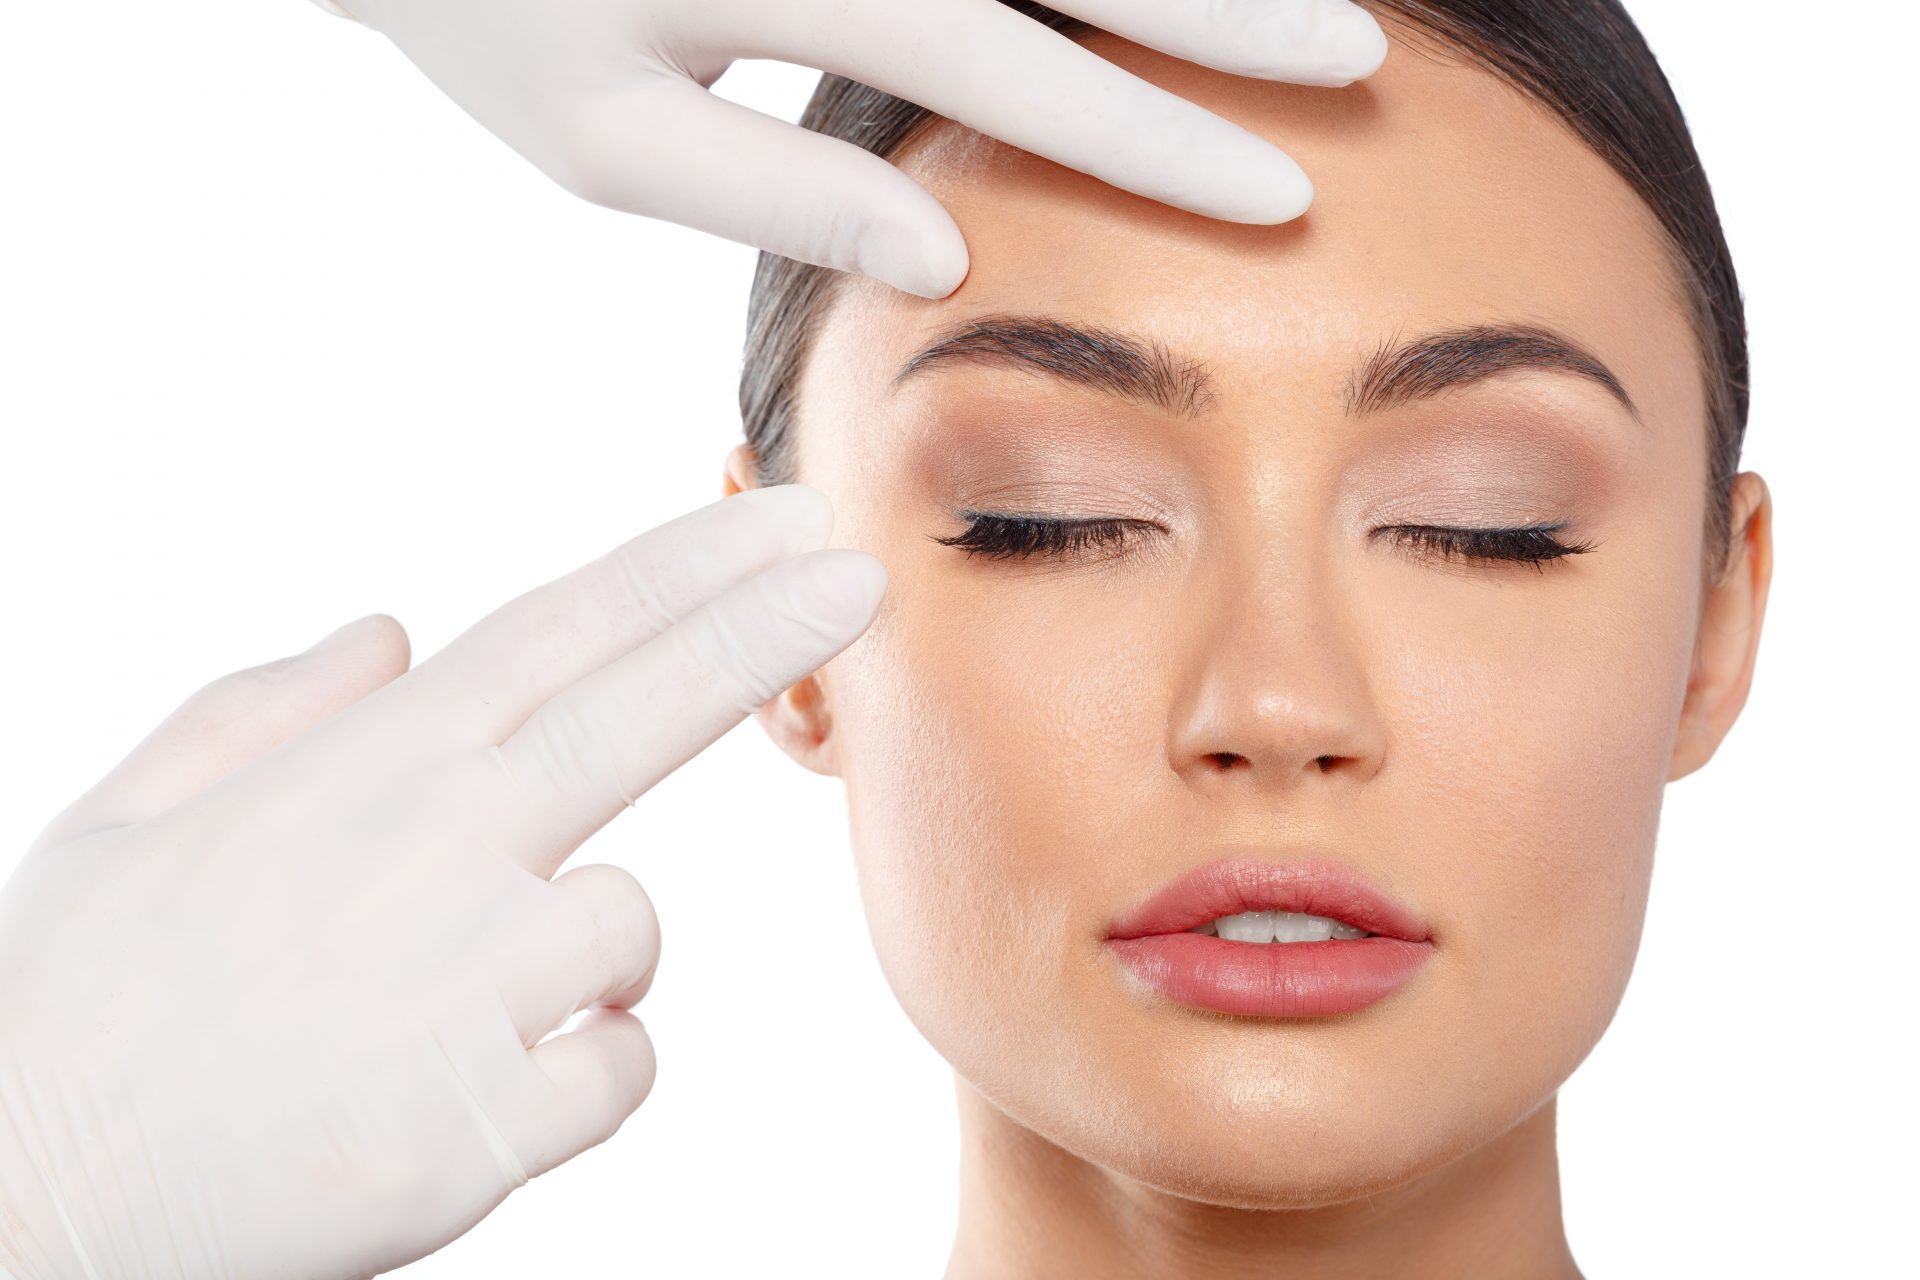 What Are The Bad Side Effects Of Botox?